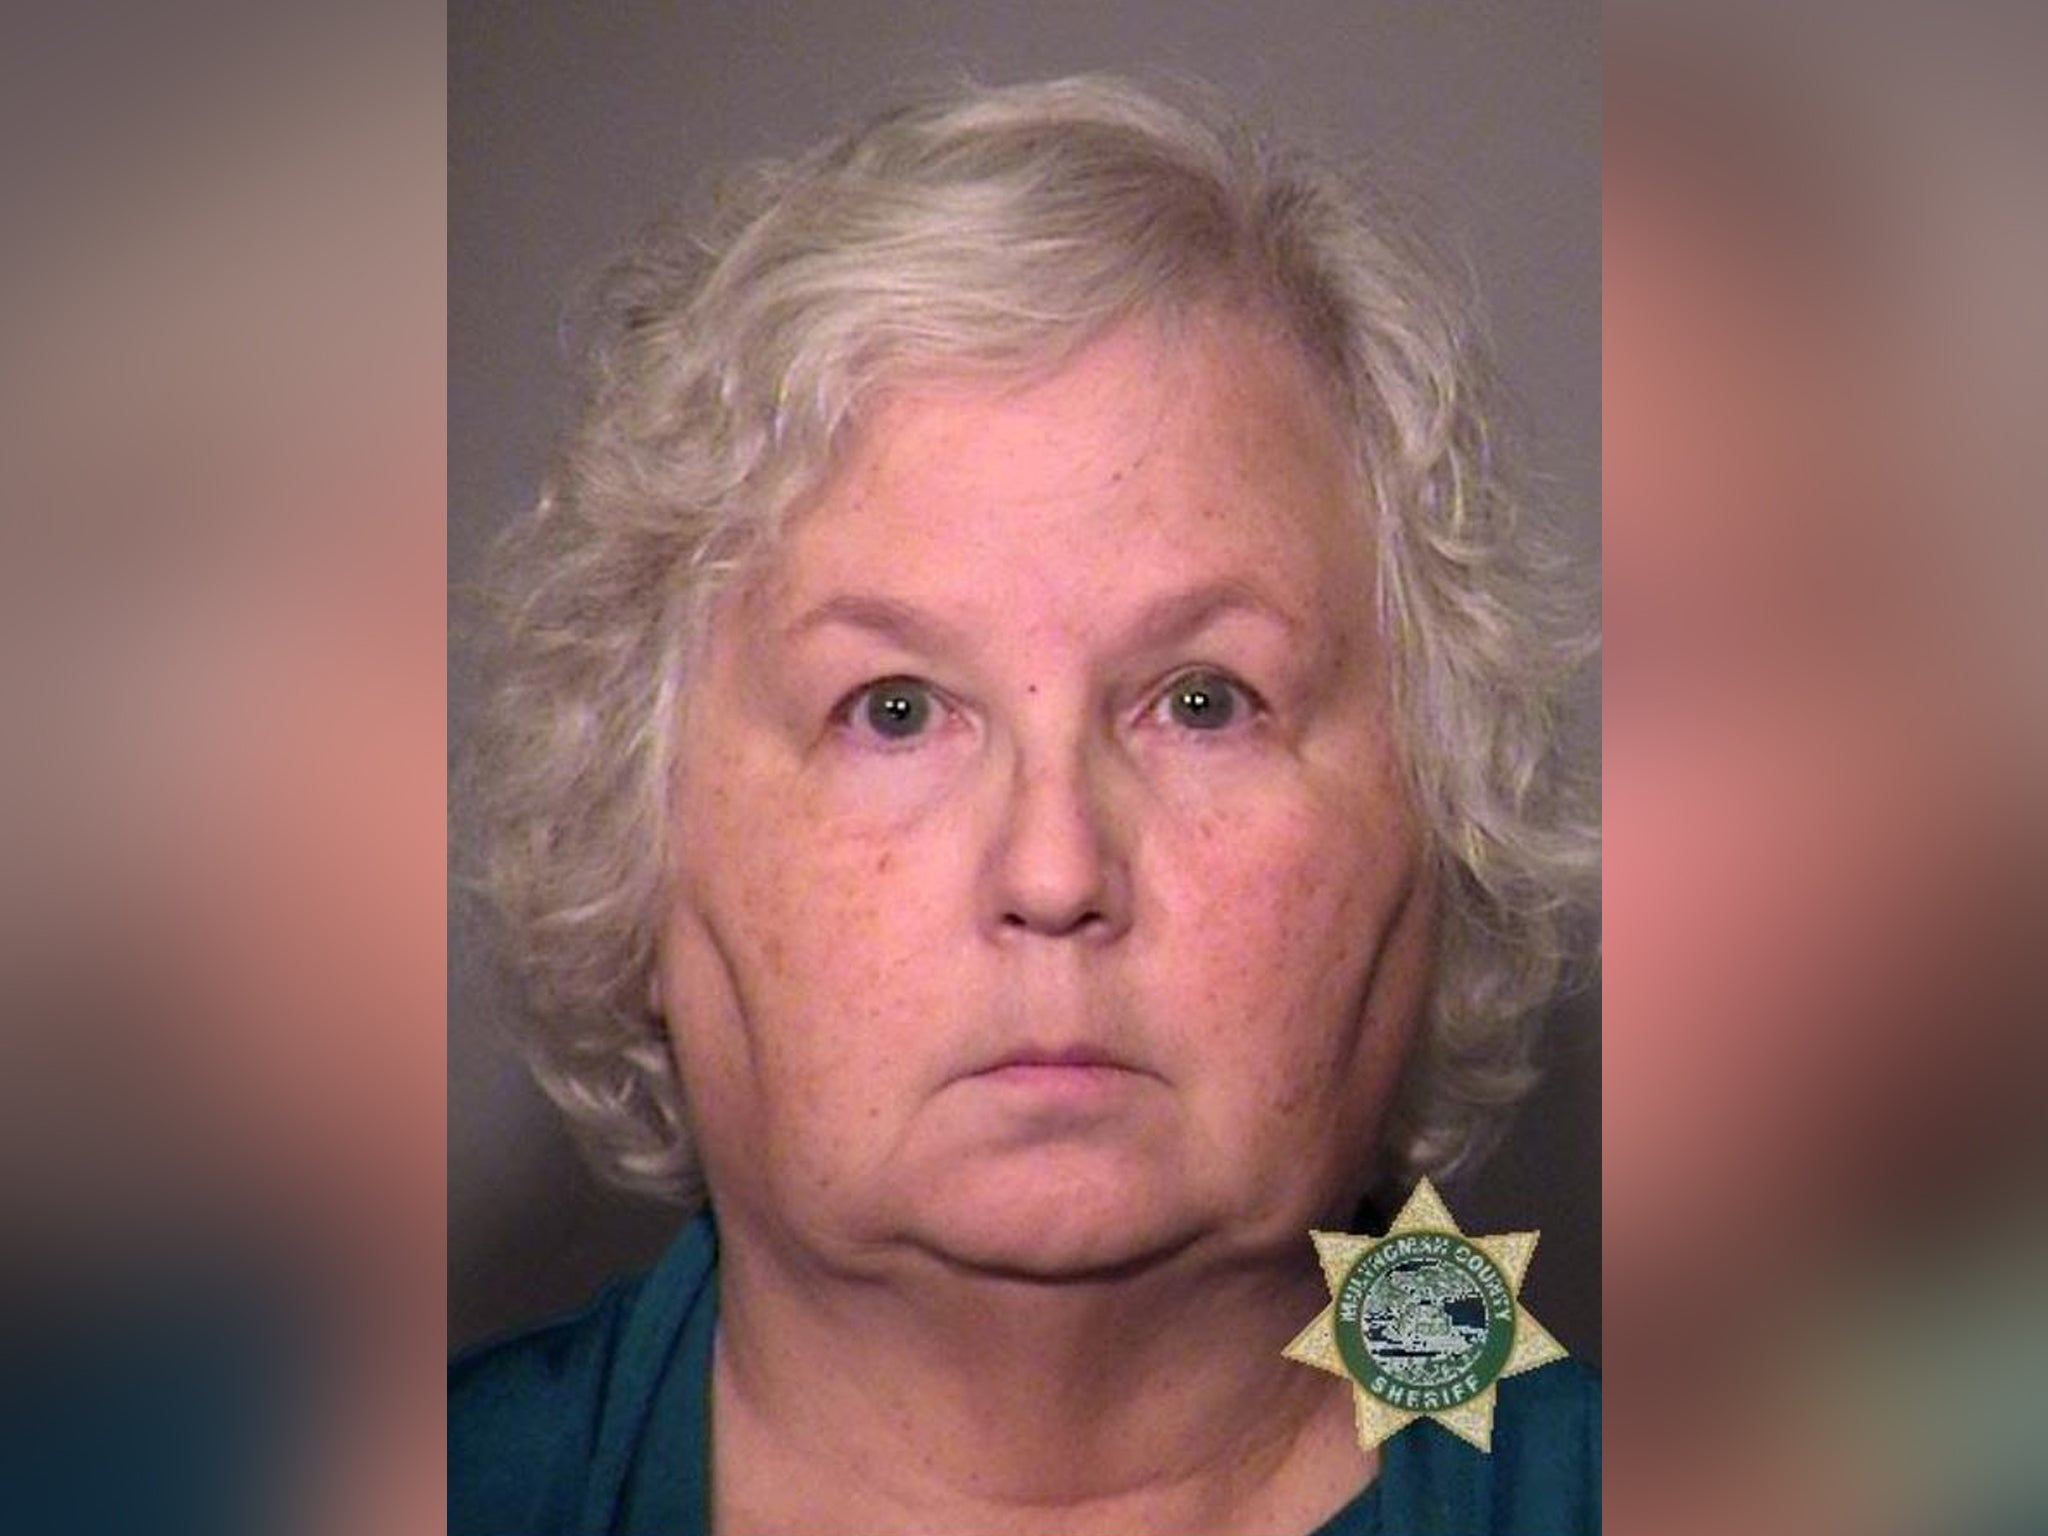 Woman who wrote 'How To Murder Your Husband' essay charged with murdering husband